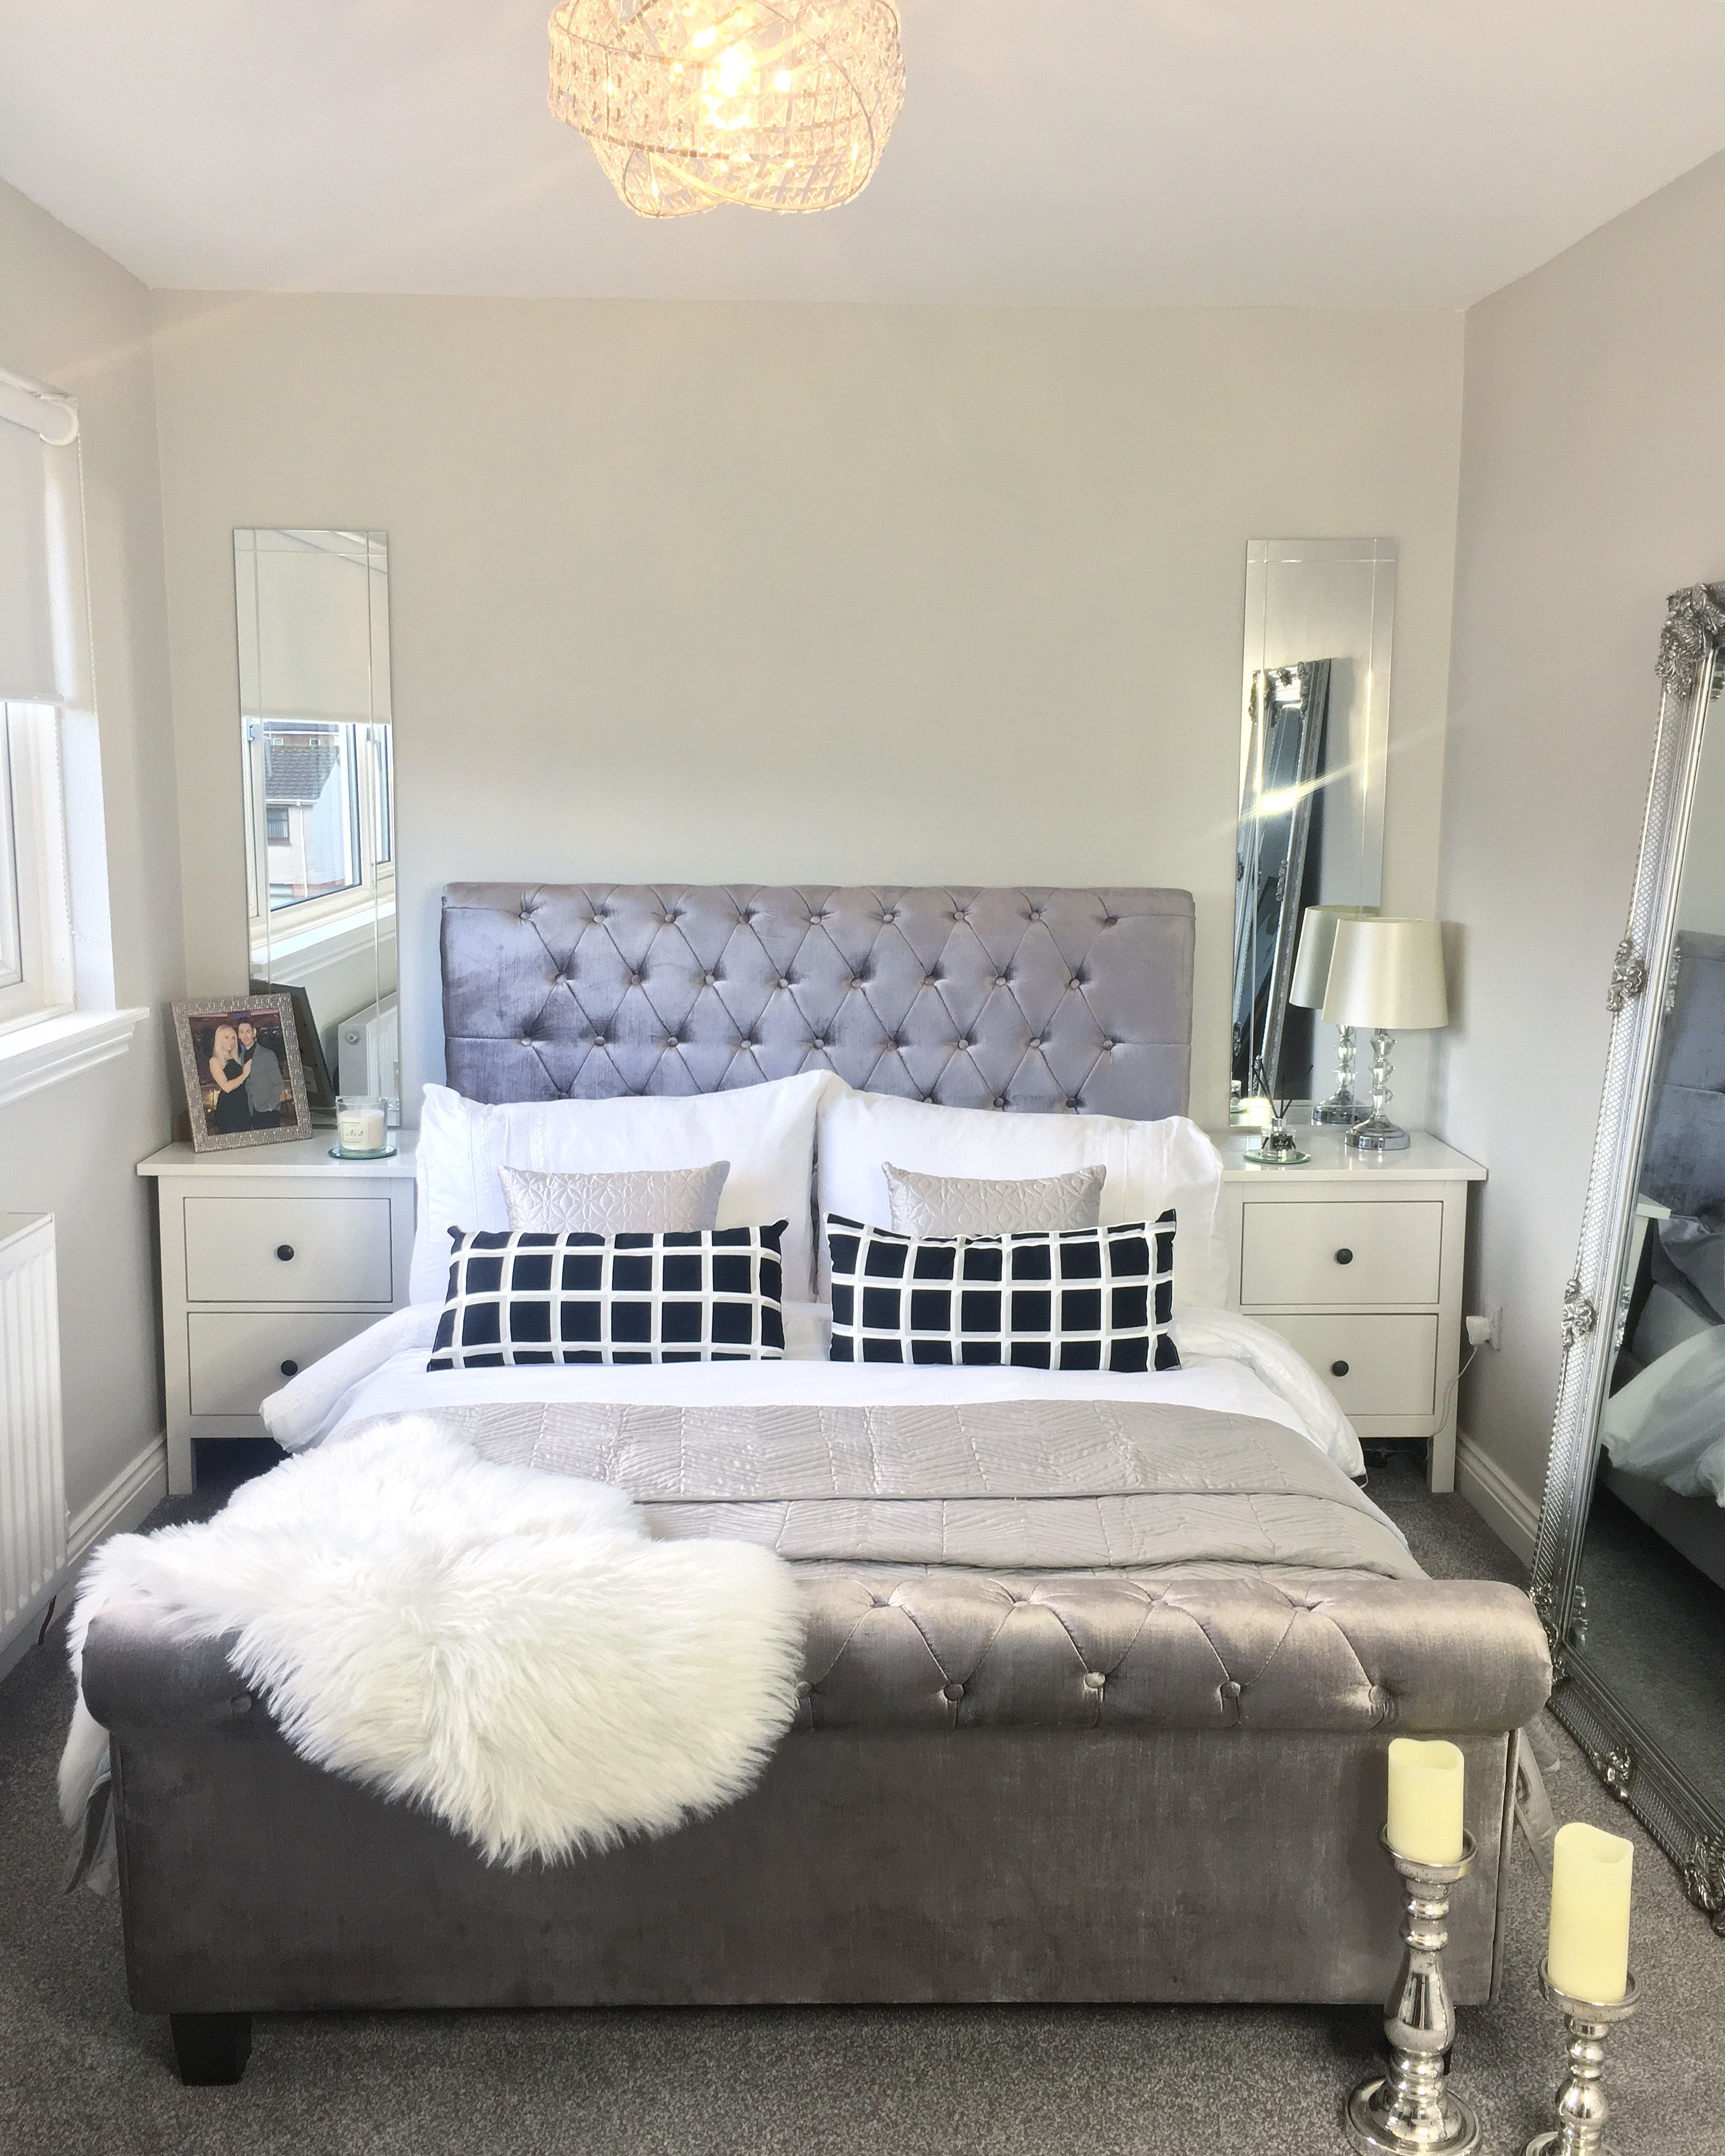 Pin By Shannon Peterson On Master Bedroom Bedroom Design Room Decor Bedroom Contemporary Bedroom